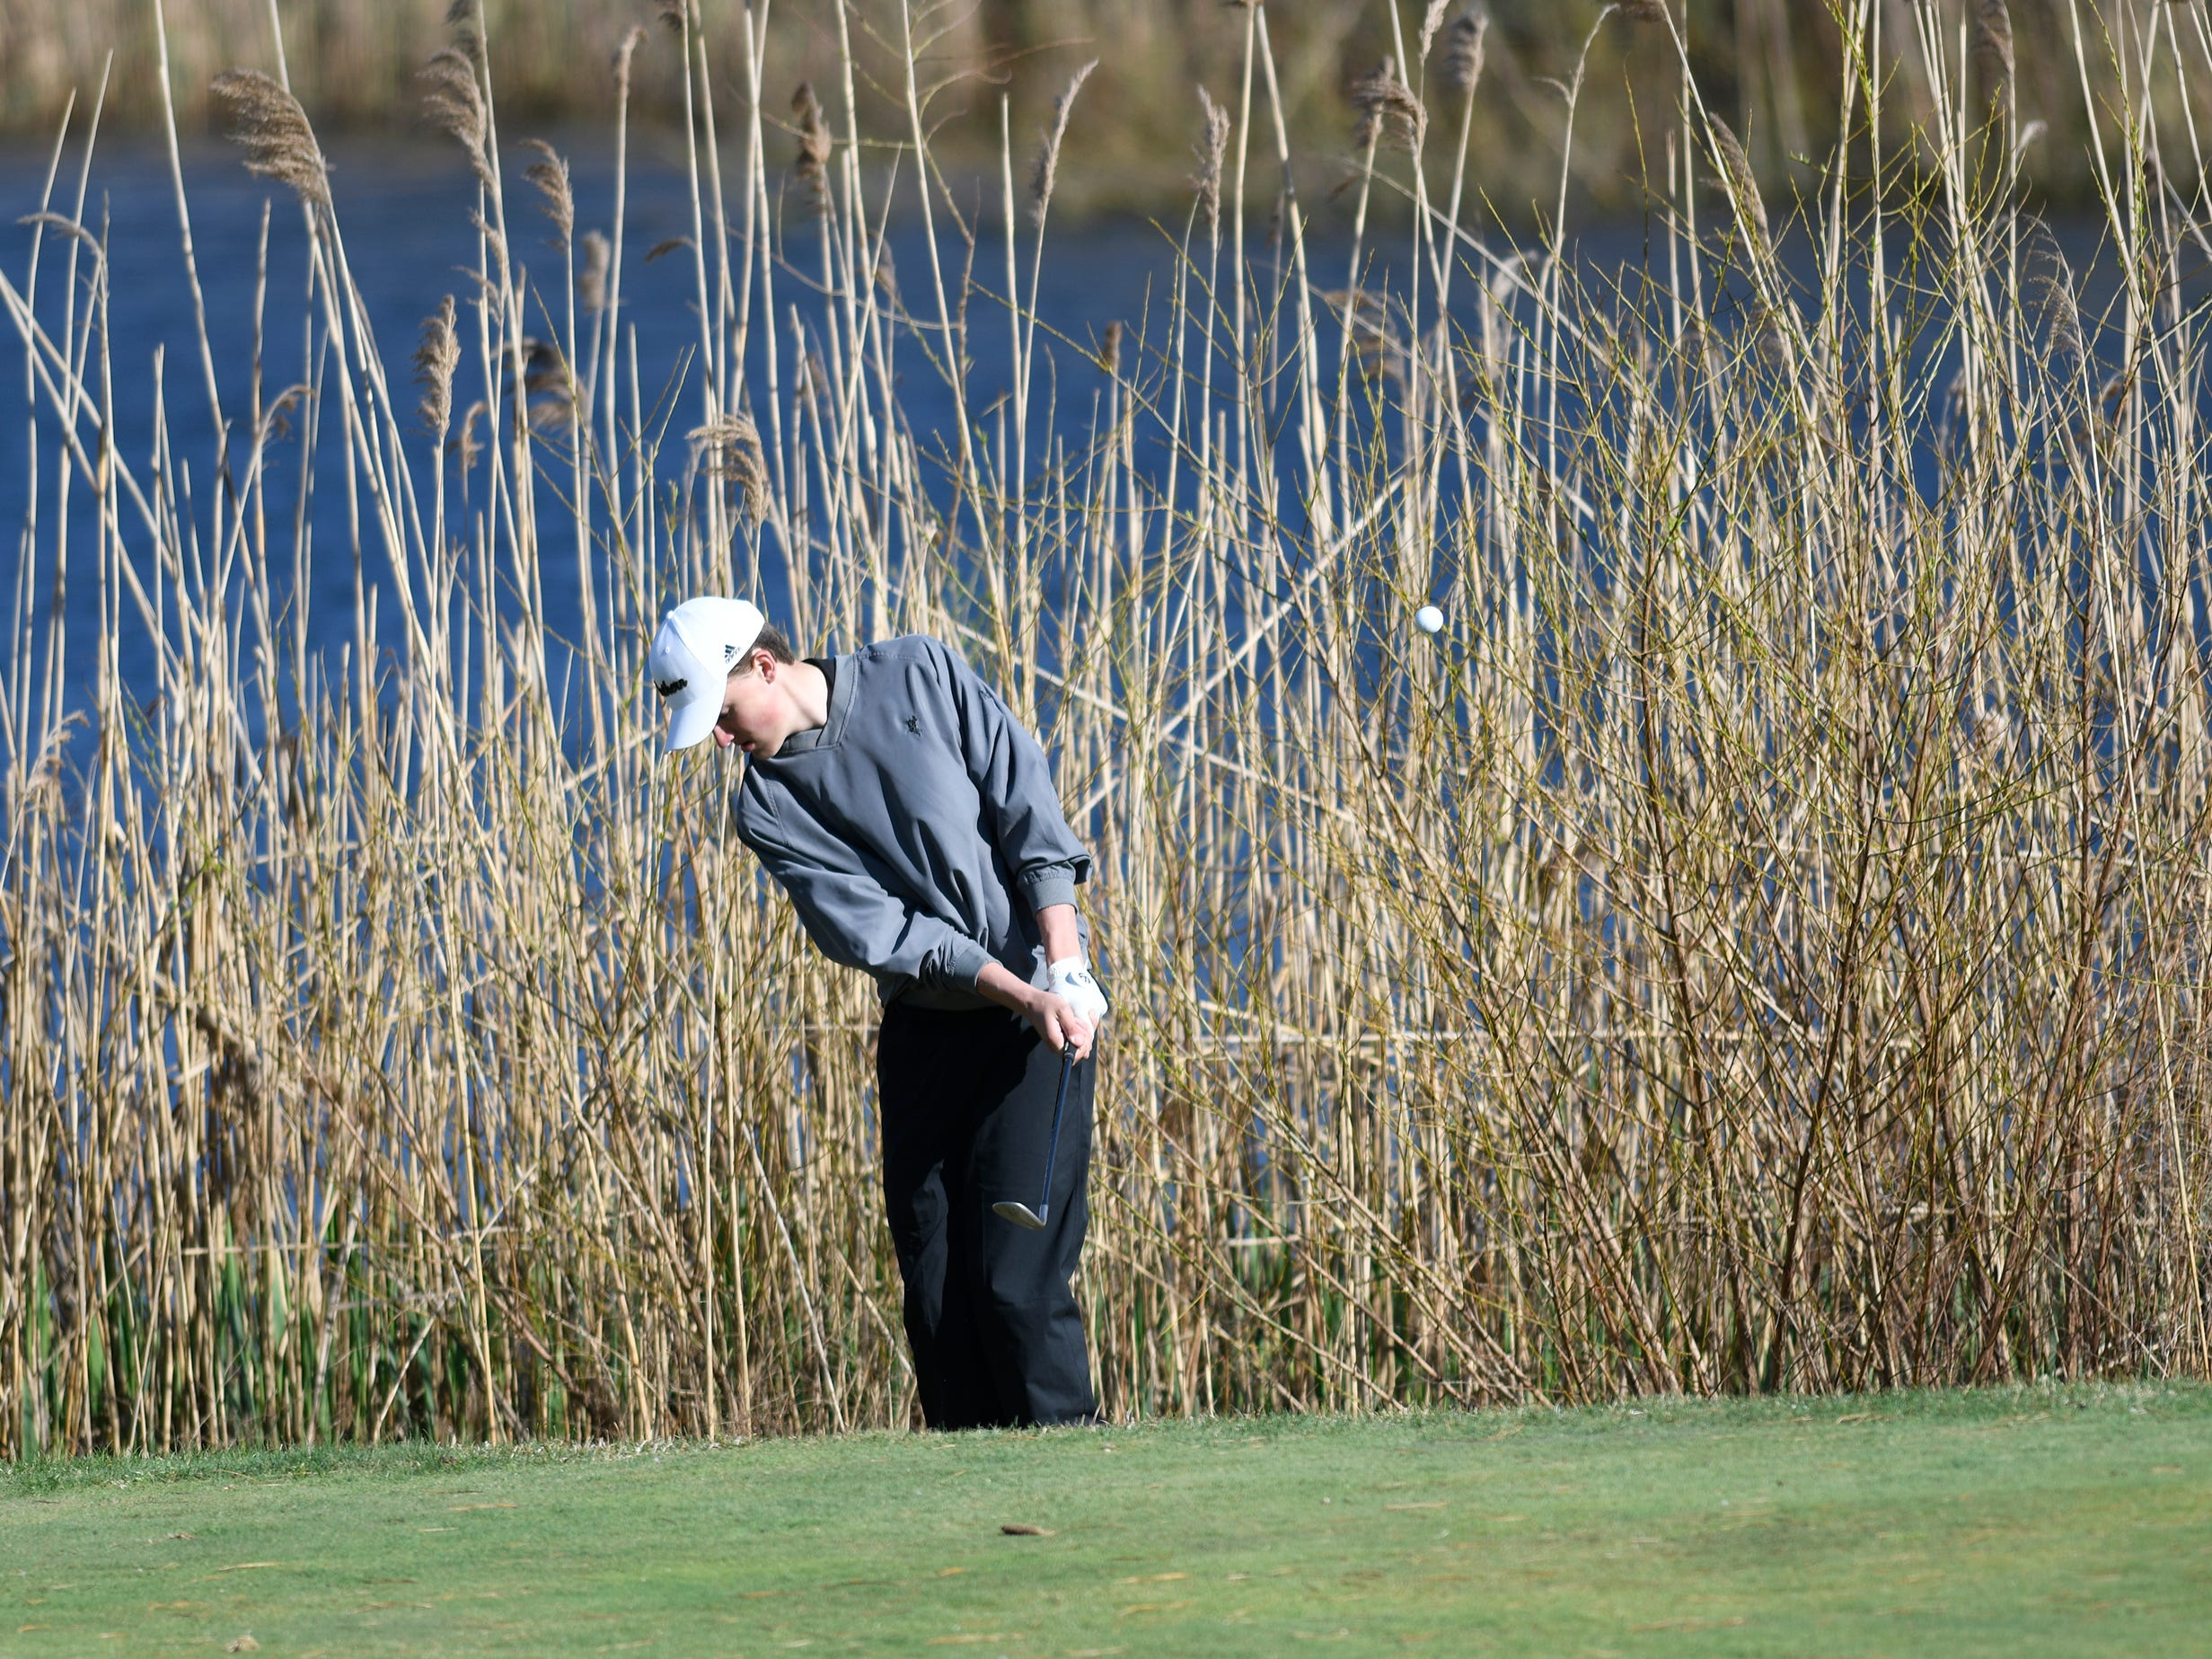 Lasse Lehmann of Southern Regional High School competes at the Ocean County Tournament on April 15, 2019,  at Sea Oaks in Little Egg Harbor. Toms River North's Connor Bekefi emerged as the individual champion with a 3-over-par 75, four shots better than teammate Leo Kane. Toms River North successfully defended its team title, posting a total of 336, which was 18 shots better than Southern. Brick Memorial finished third.